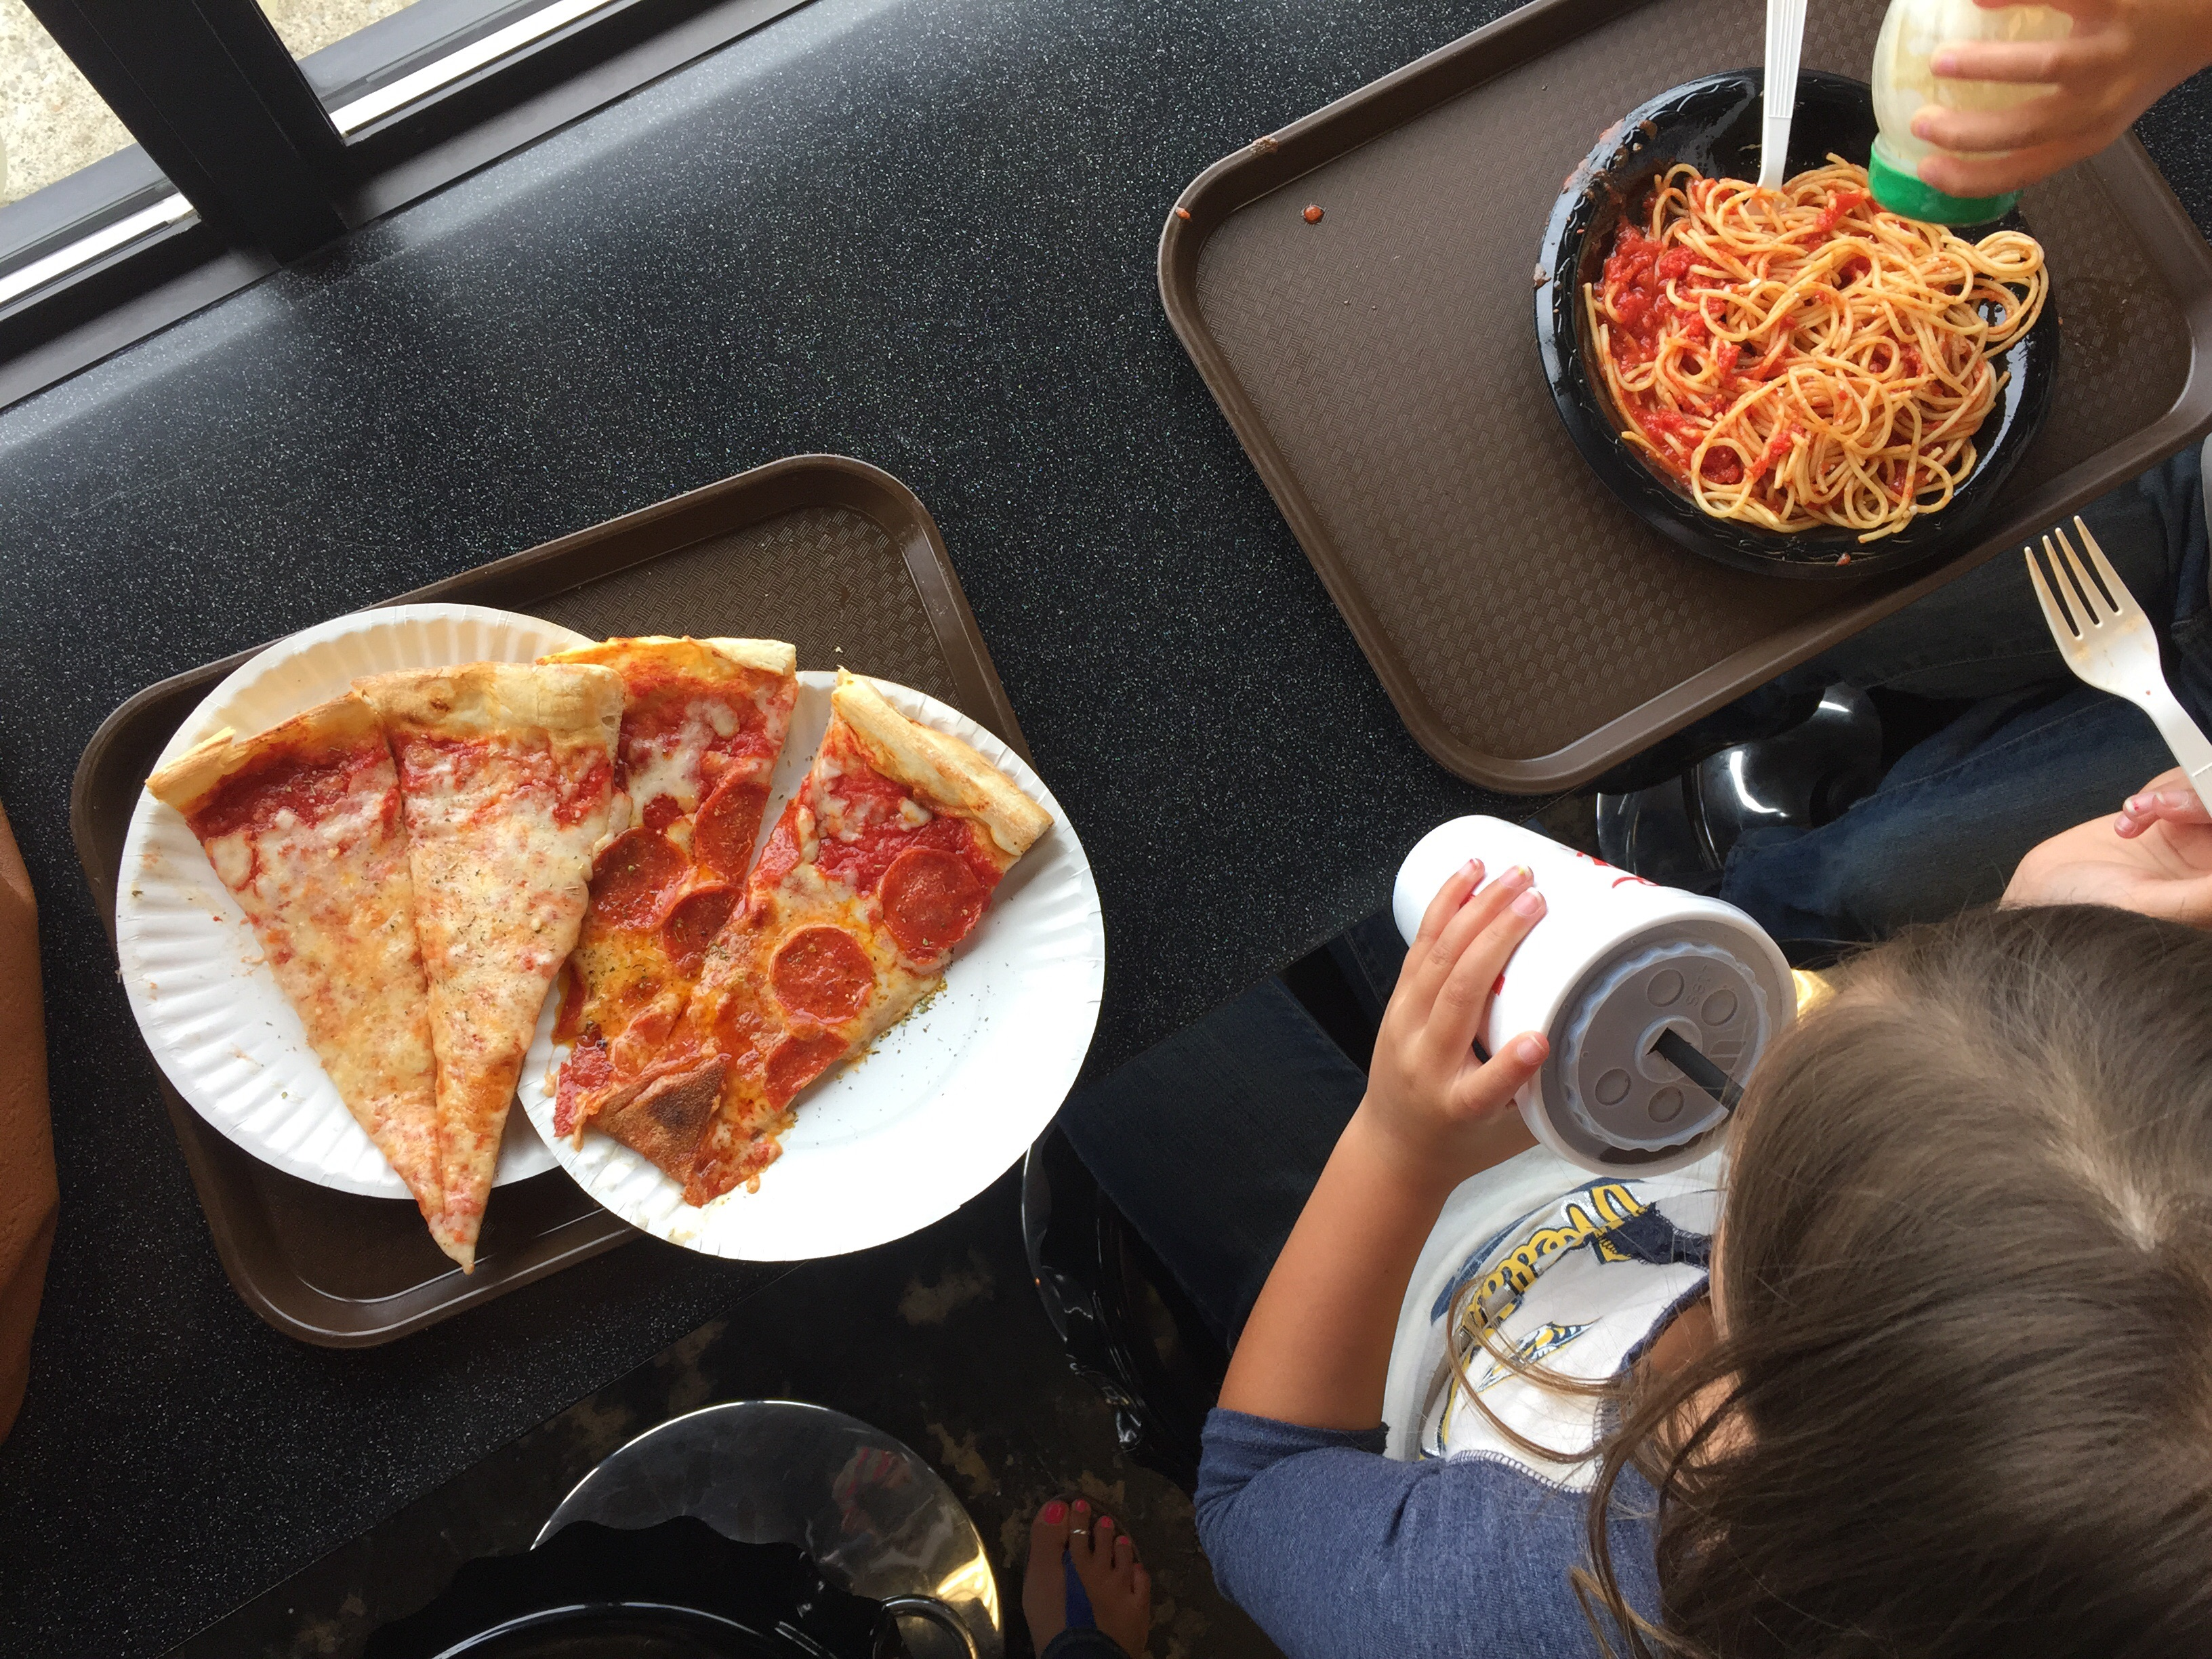 Of course when faced with the Italian array of dishes, my kids choose a cheese slice with a side of spaghetti! #ParentingProbs It's ok. Still yum!